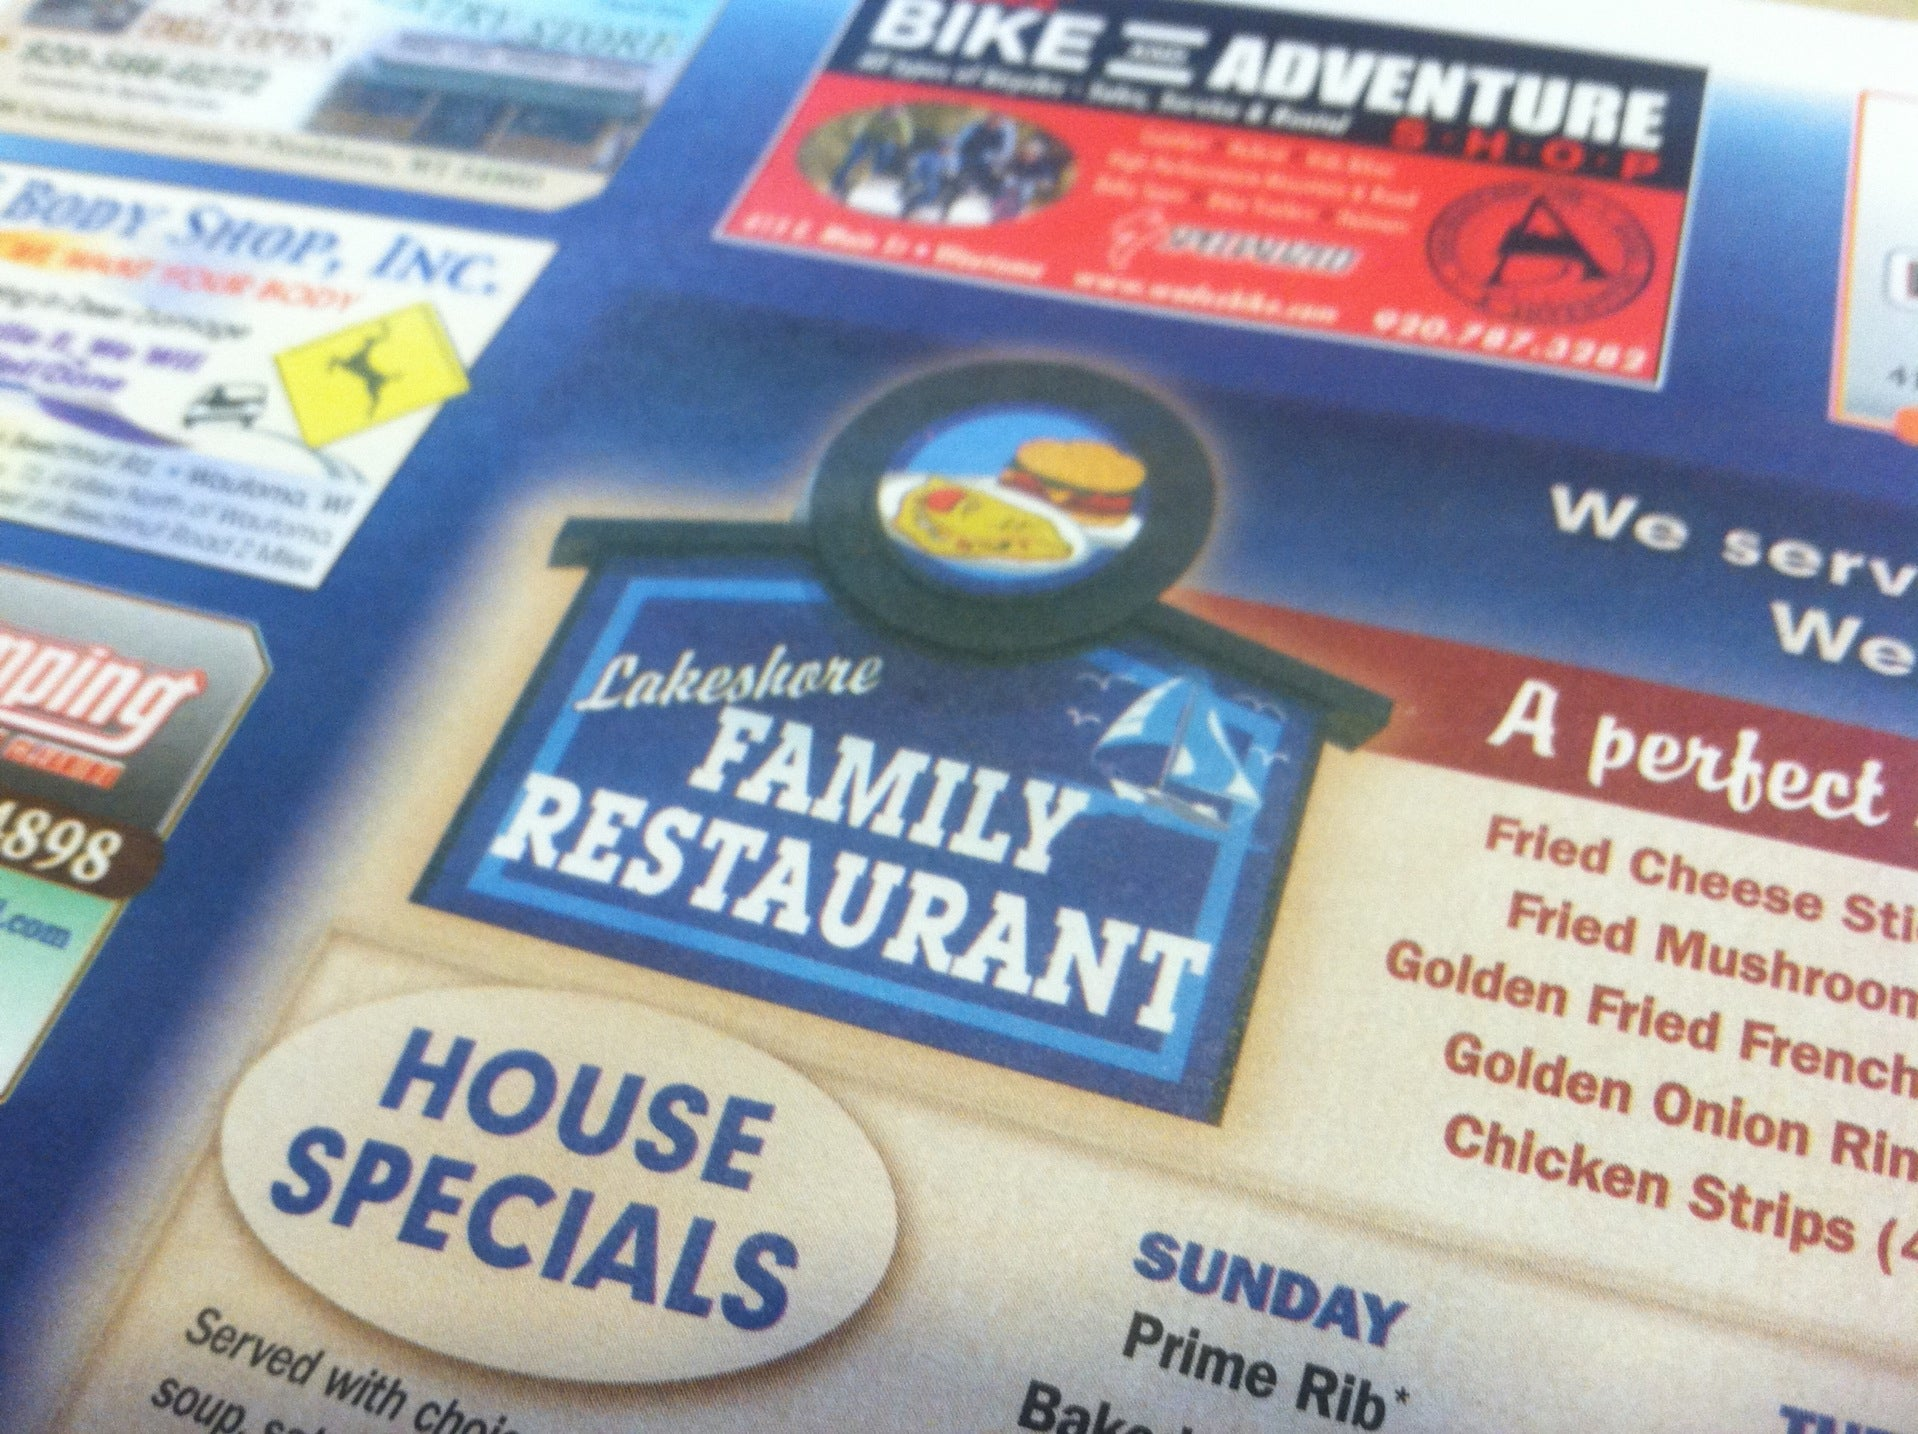 Lakeshore Family Restaurant,